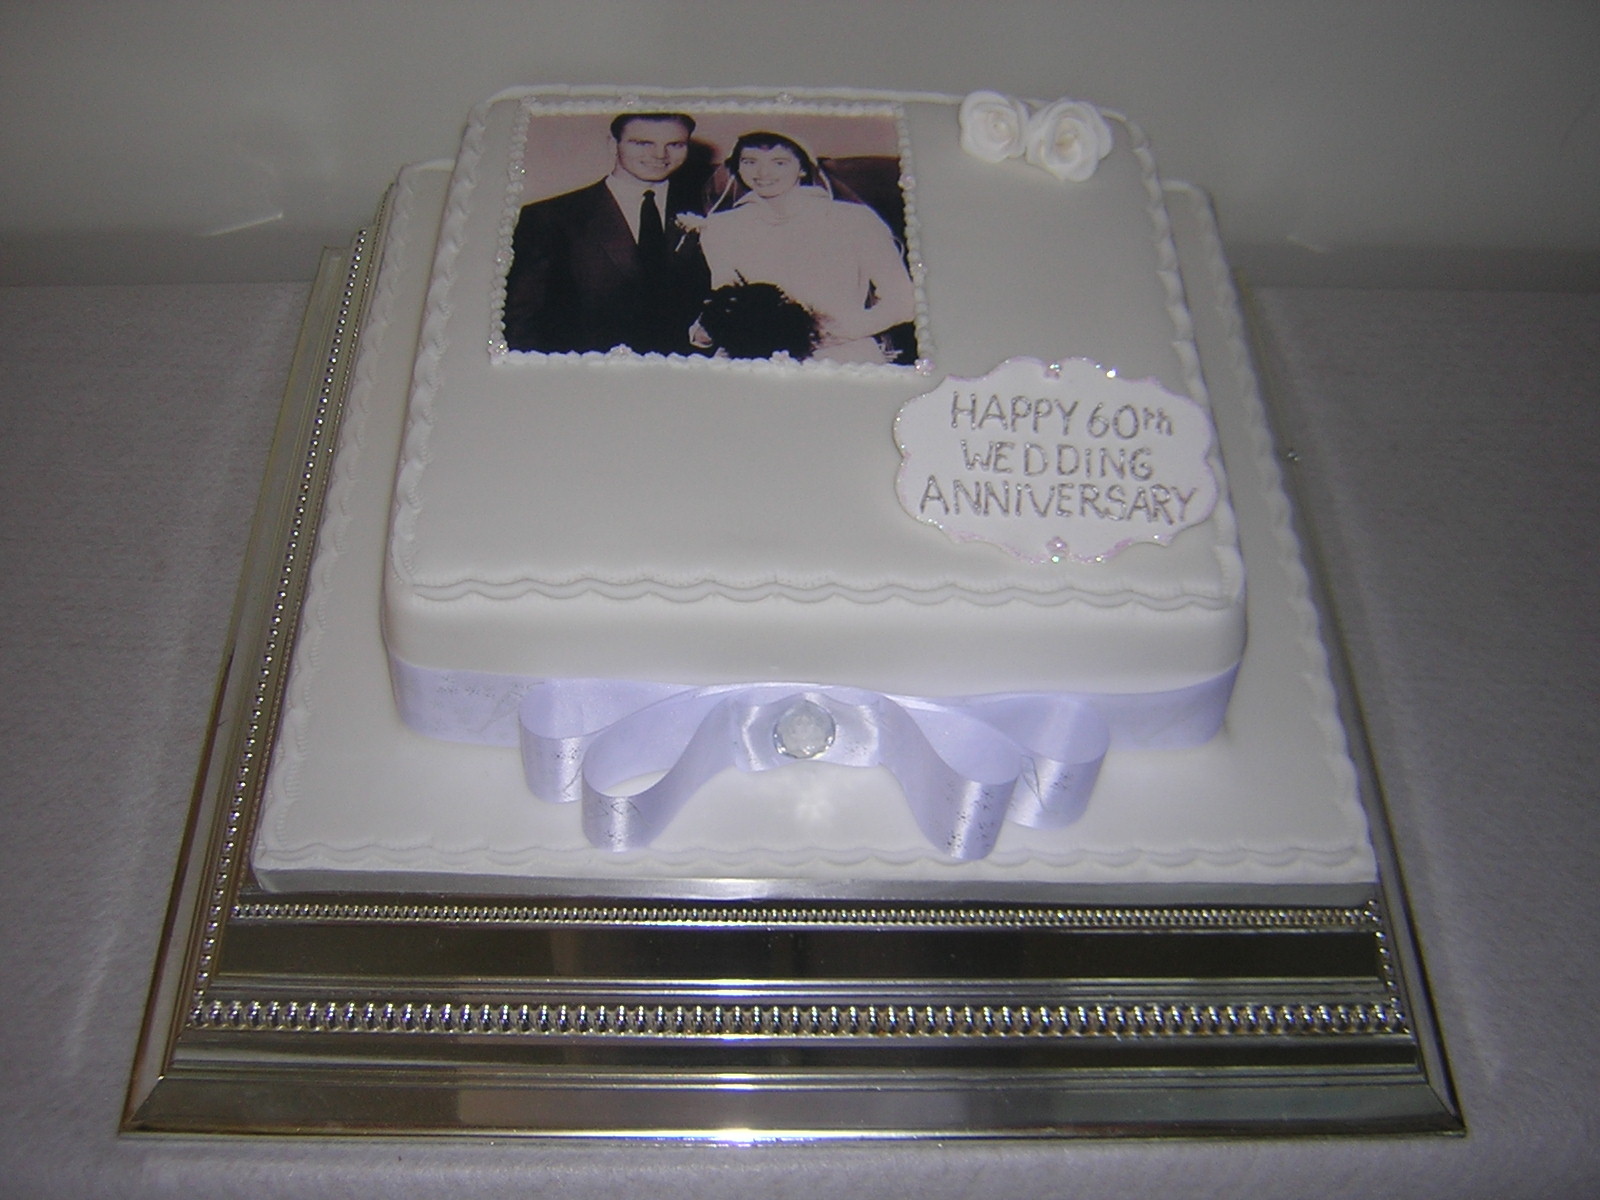 Cake Decorations Diamond Anniversary : 60th wedding anniversary ideas on Pinterest Thumbprint ...